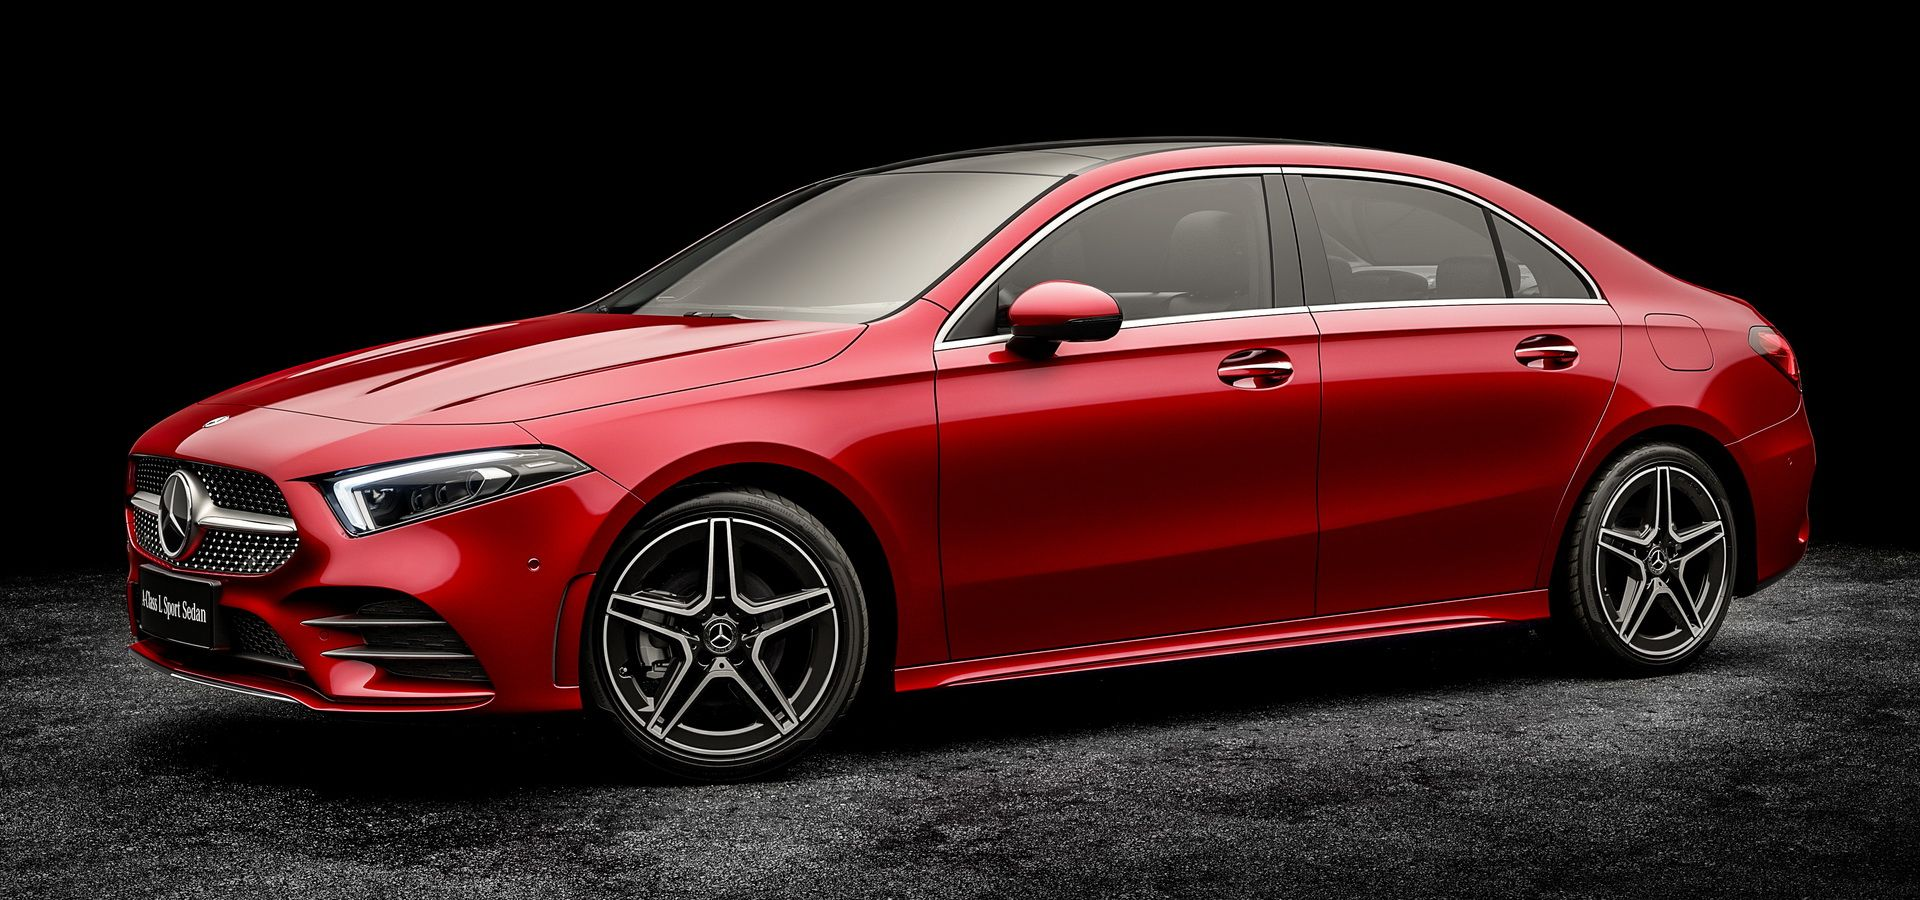 2019 Mercedes Benz Cla Styling Engines Release Date And Other Key